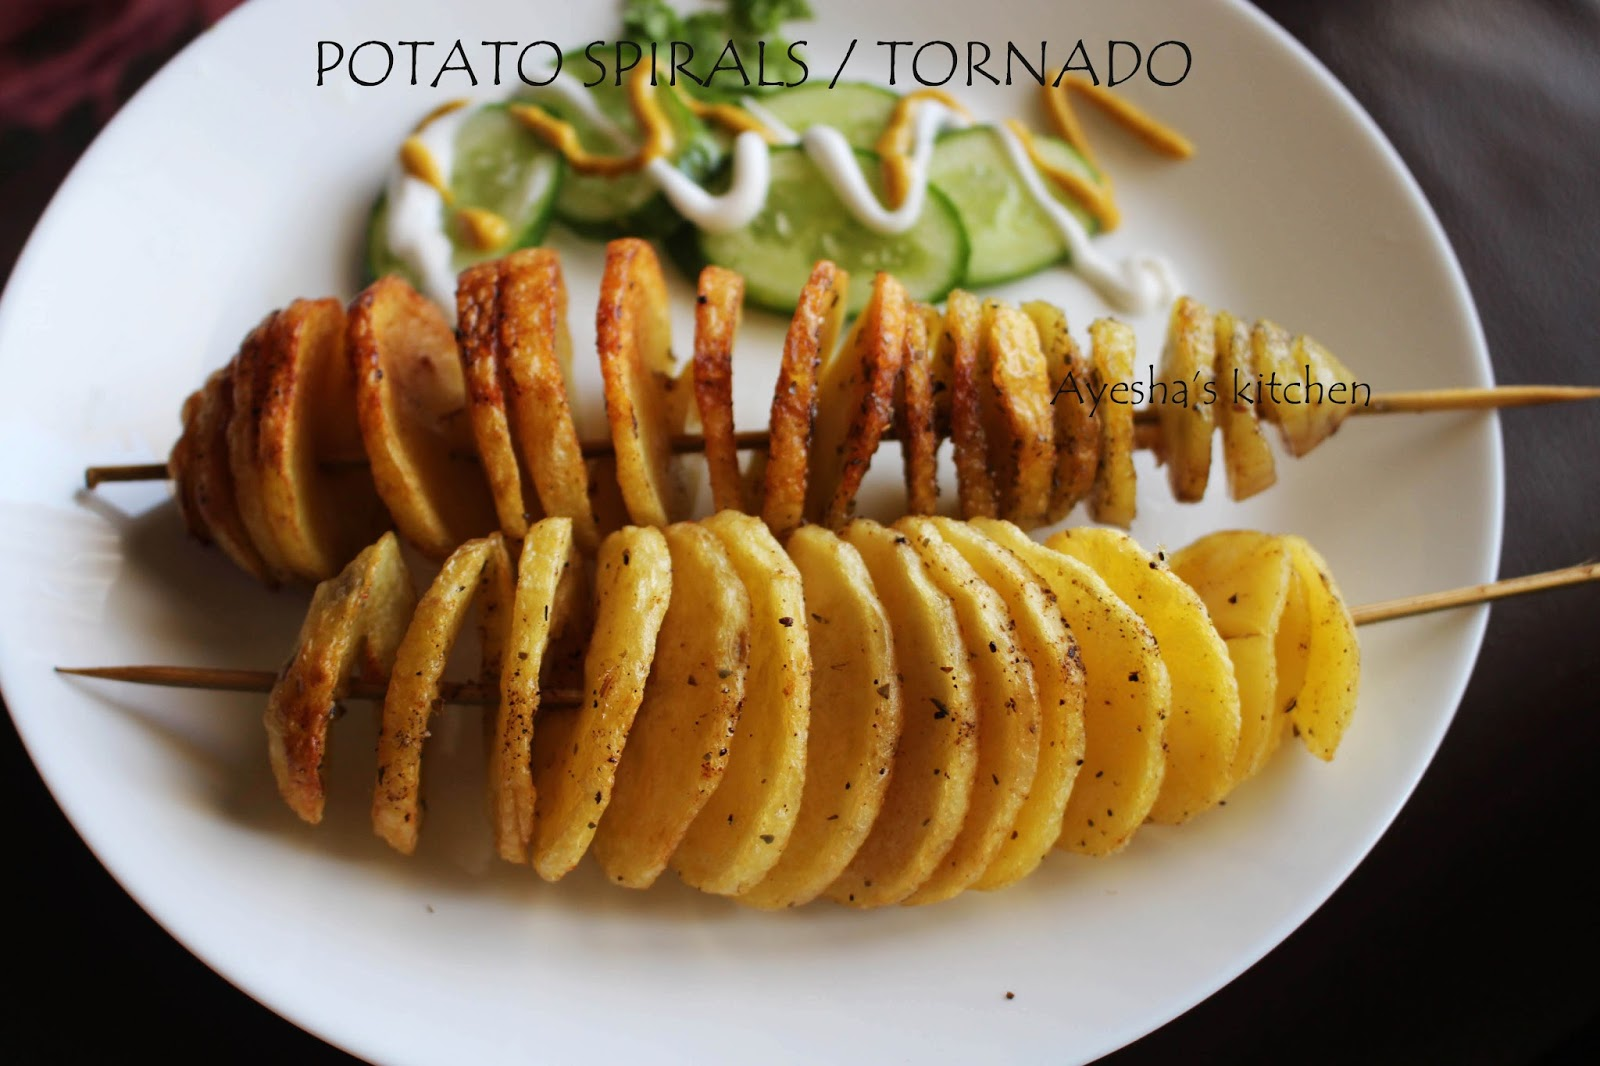 Kids Snack Potato Snack Crispy Delicious Potato Fries In A Skewer Quick  Snack For Party You 20161004bakedpotatovickywasik1g